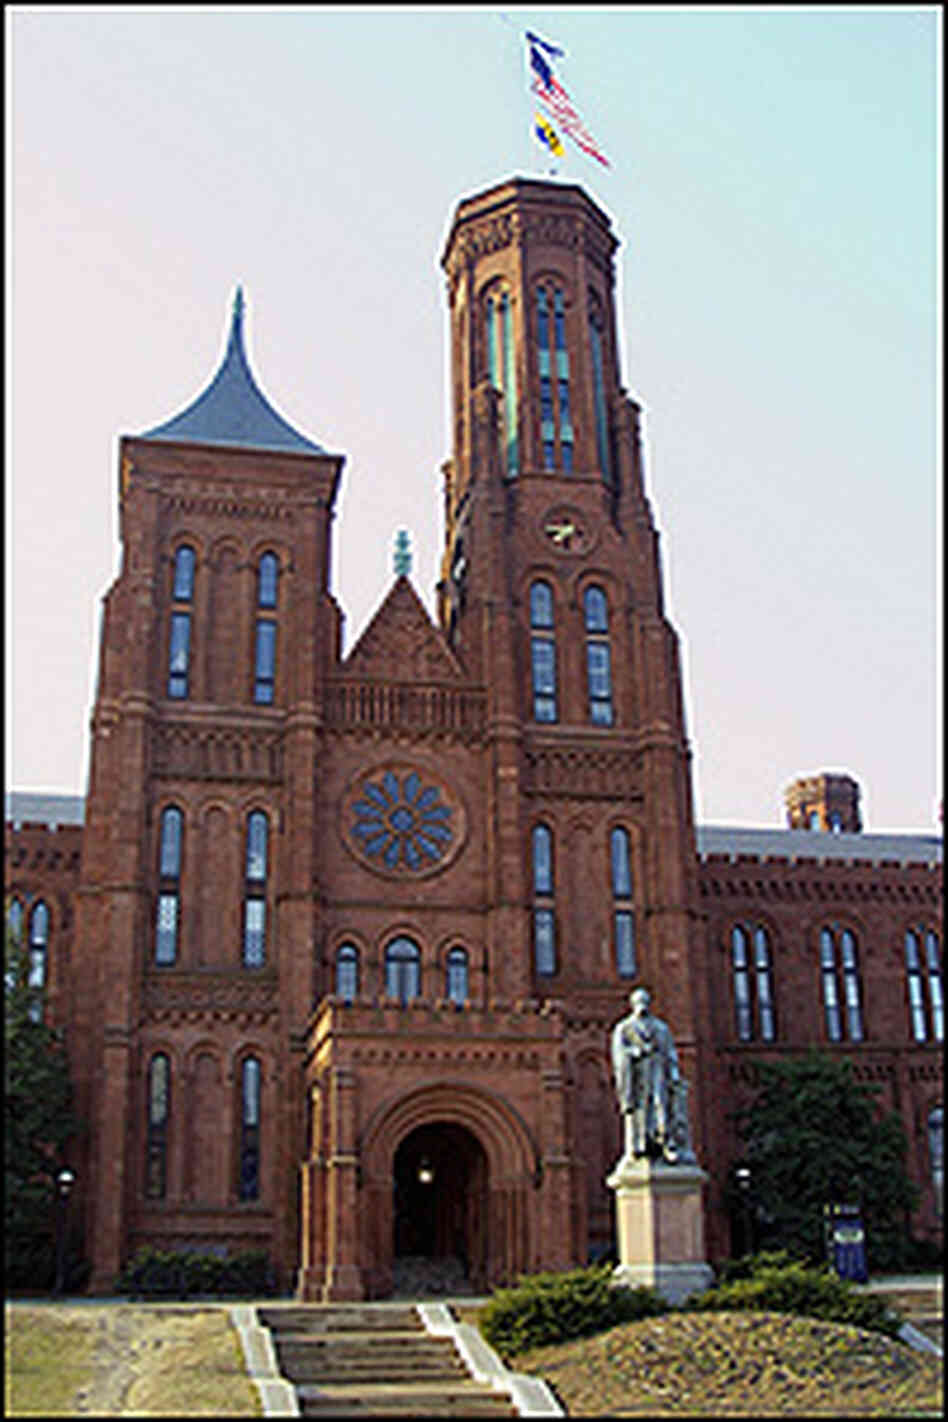 The Smithsonian's first building, popularly known as the C